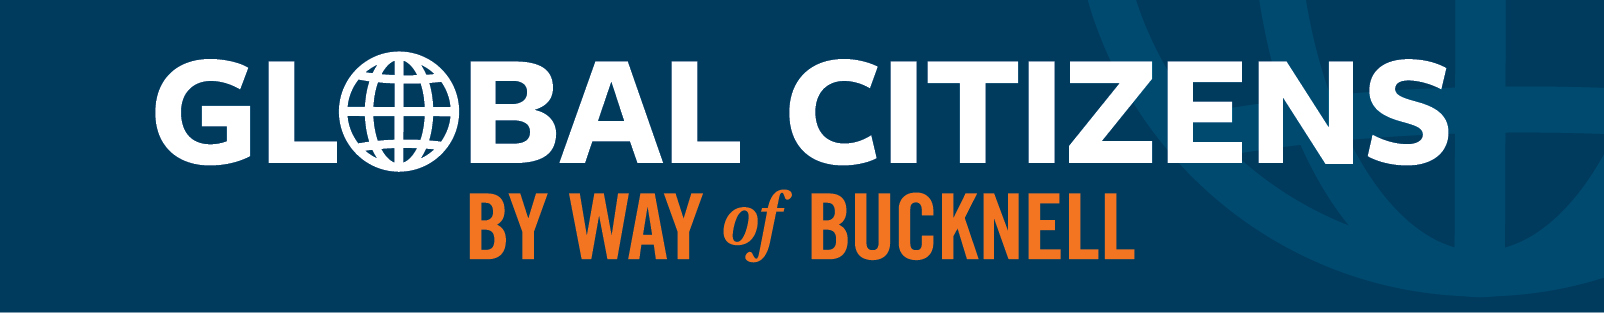 [DEAN'S EVENT] Global Citizens. By Way of Bucknell.